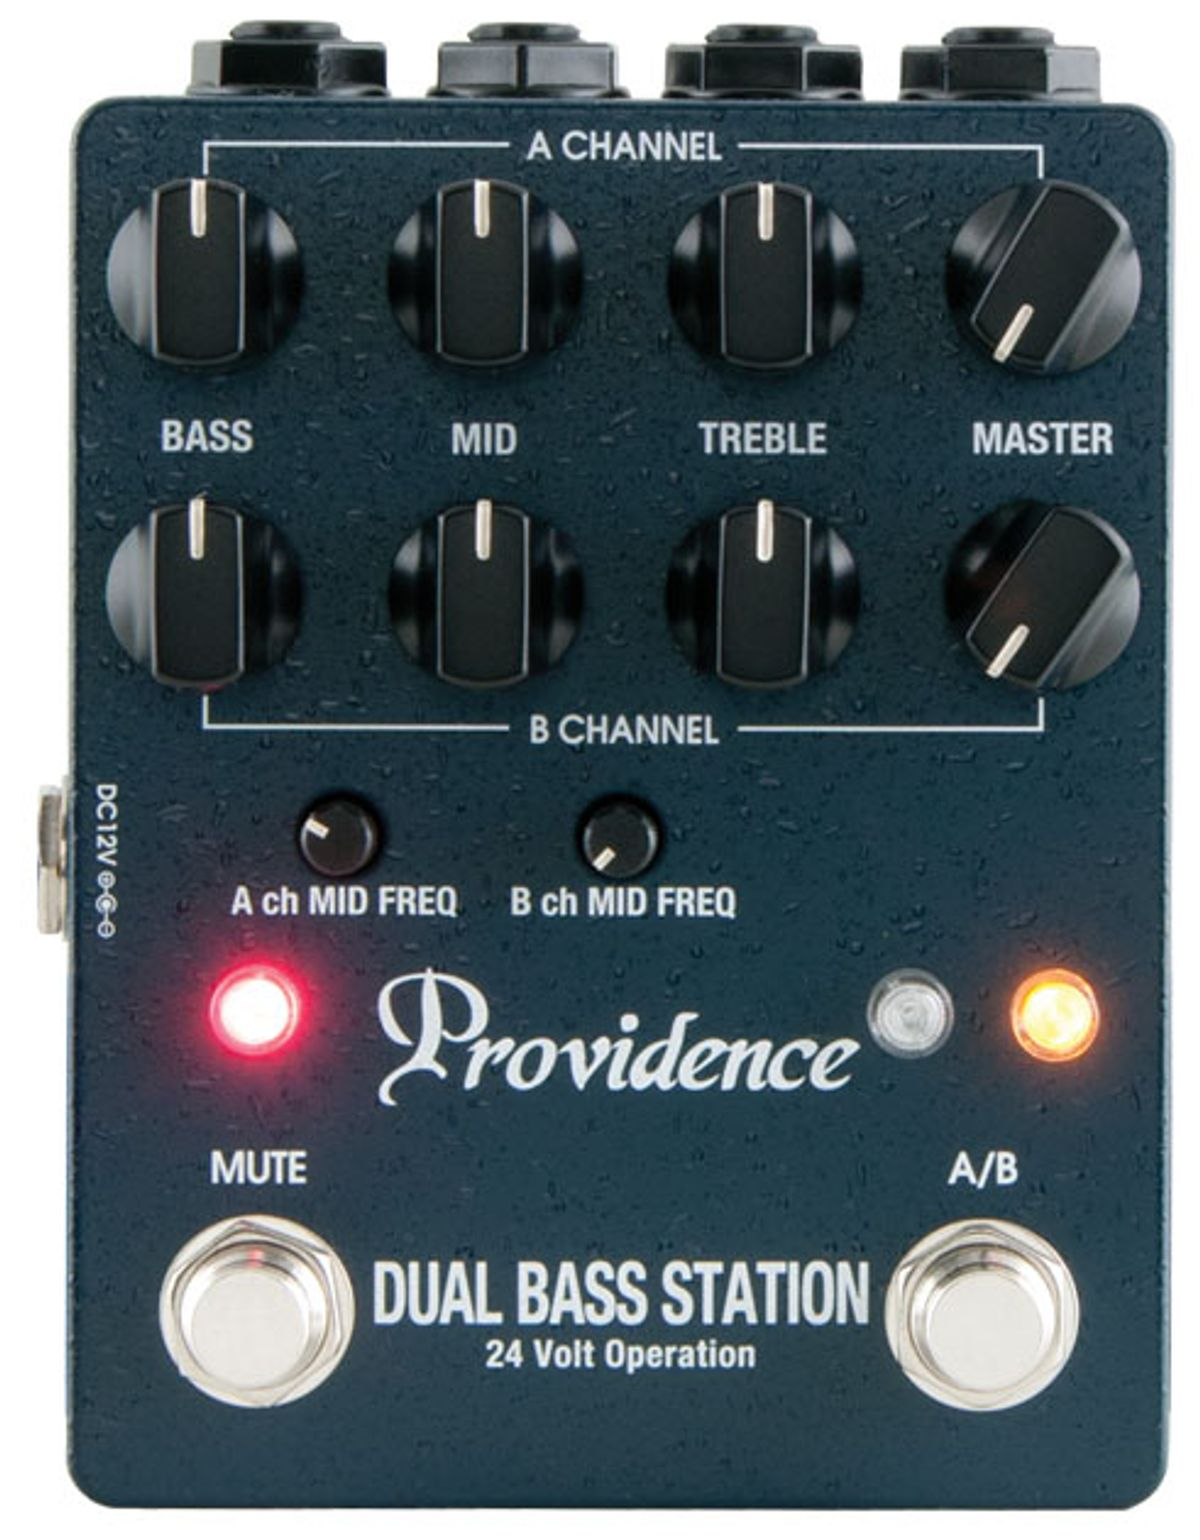 Providence Dual Bass Station Review